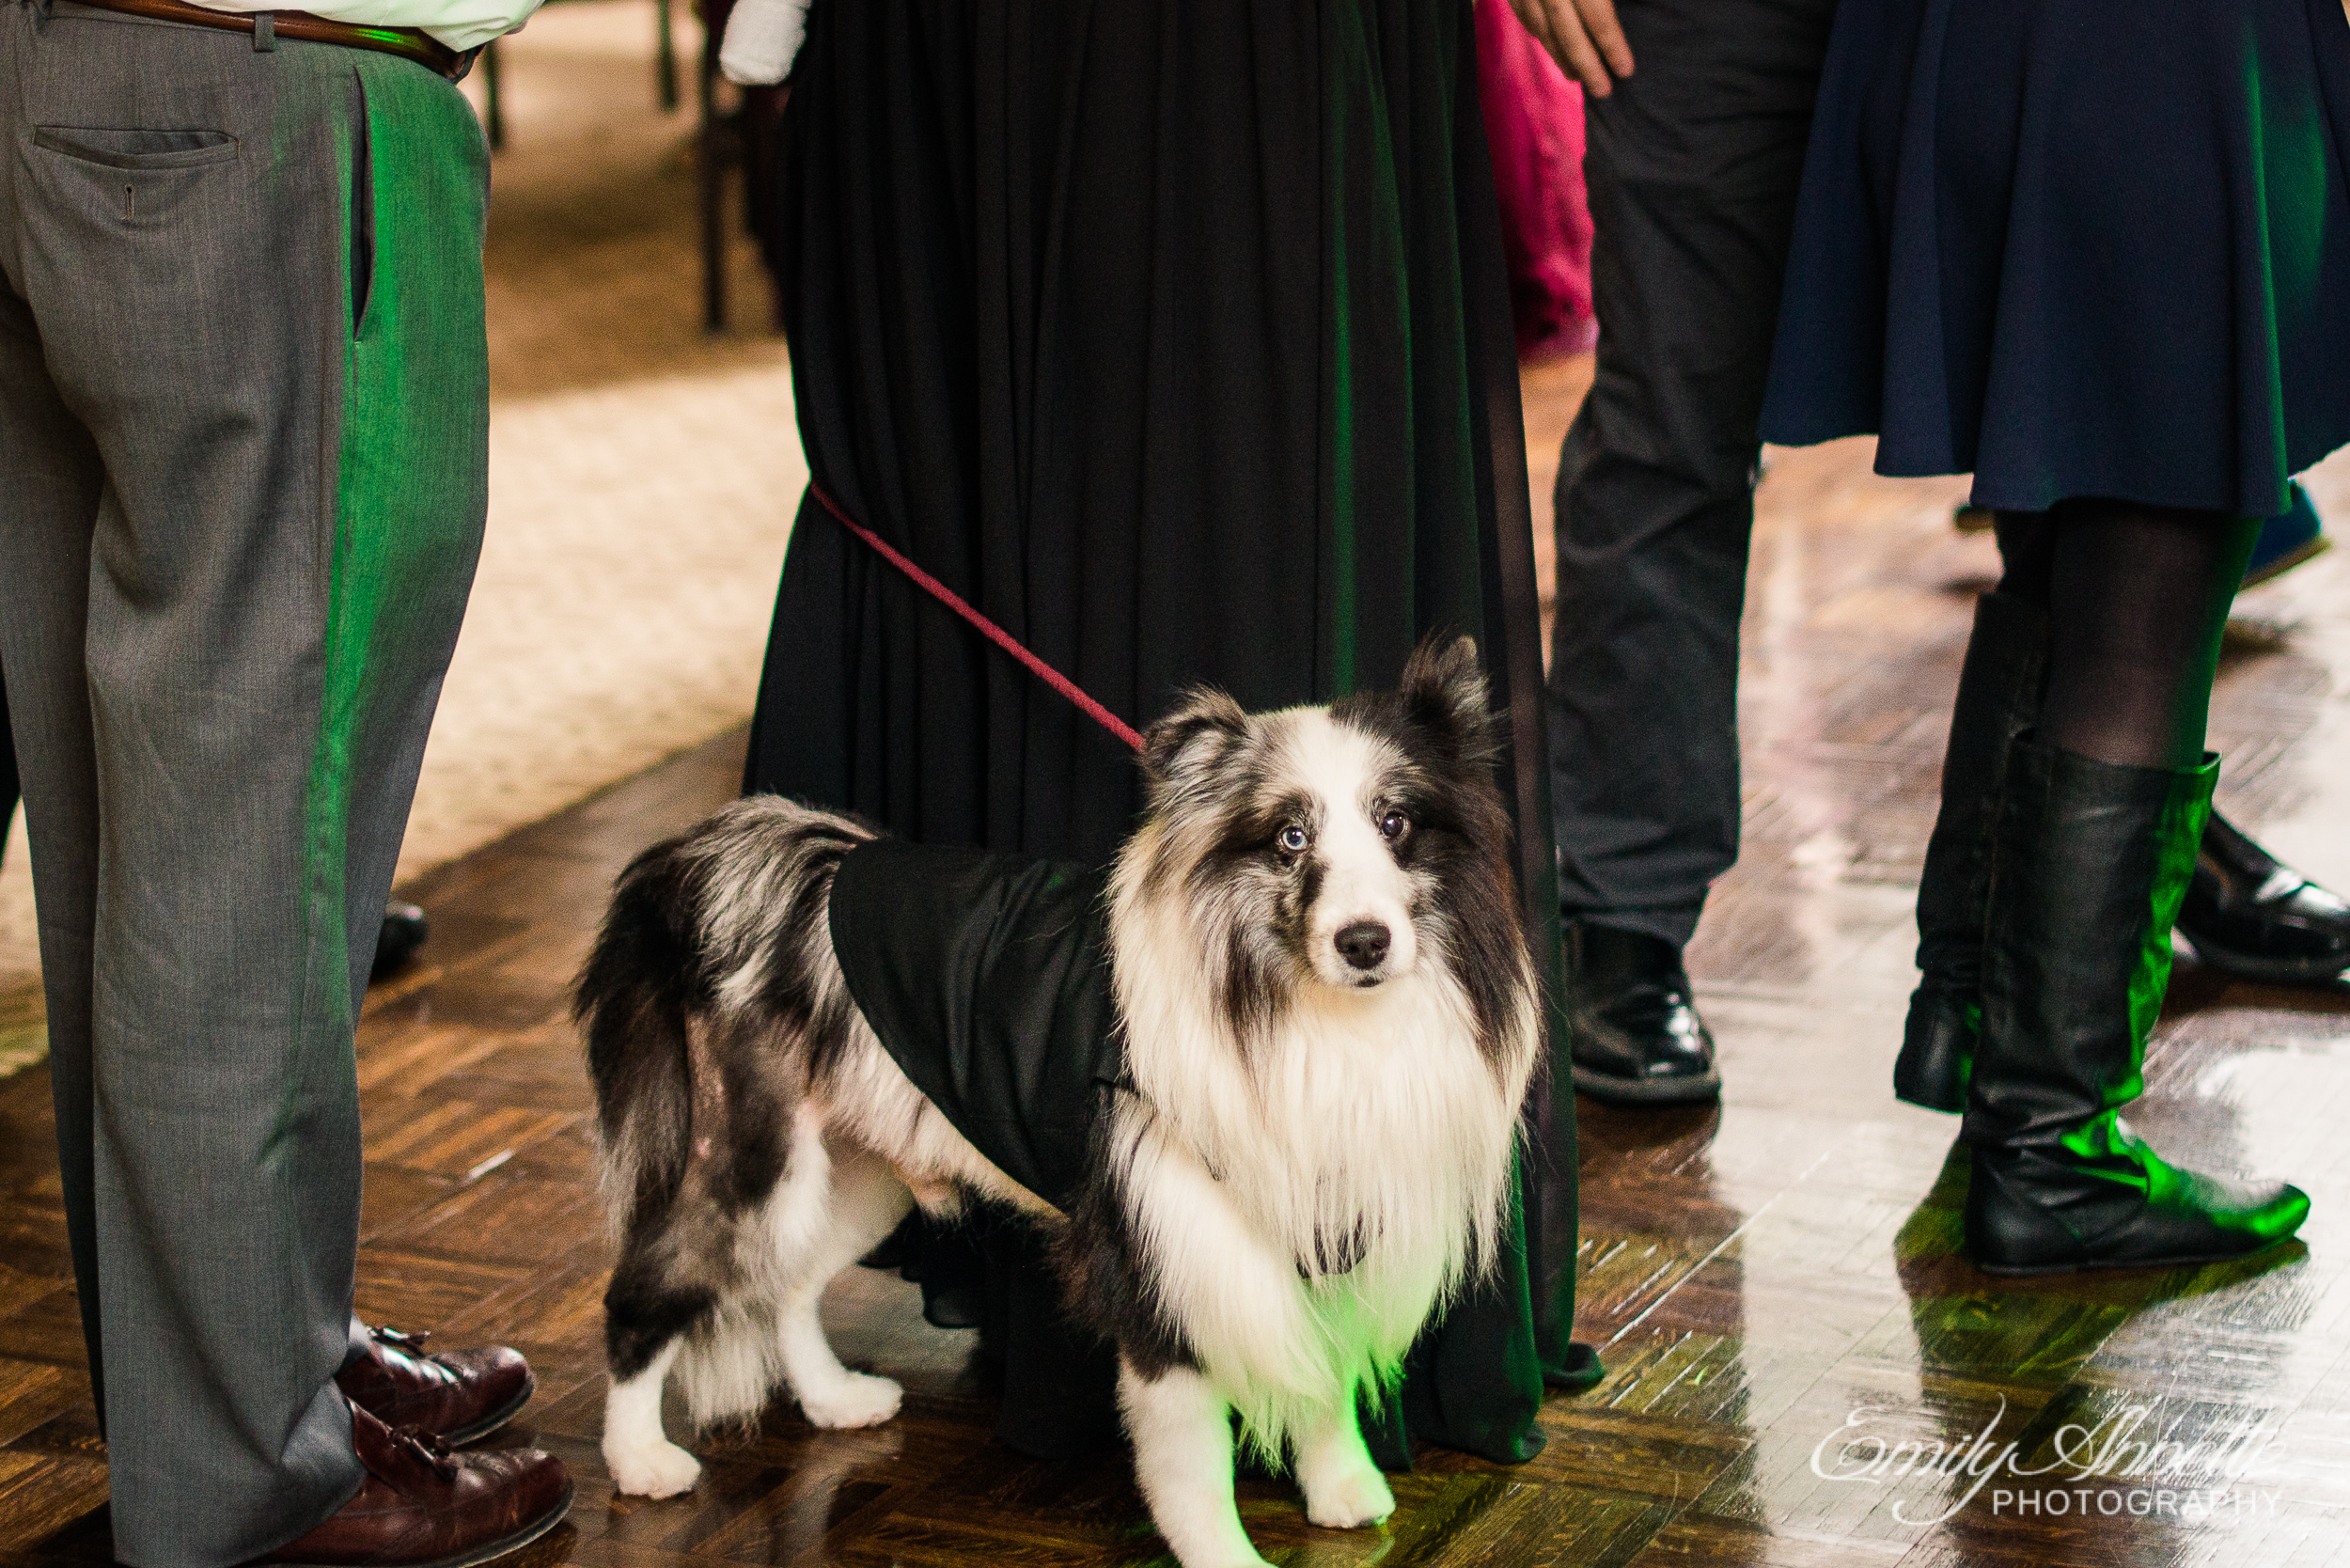 A service dog during a wedding reception at Willow Oaks Country Club in Richmond, Virginia